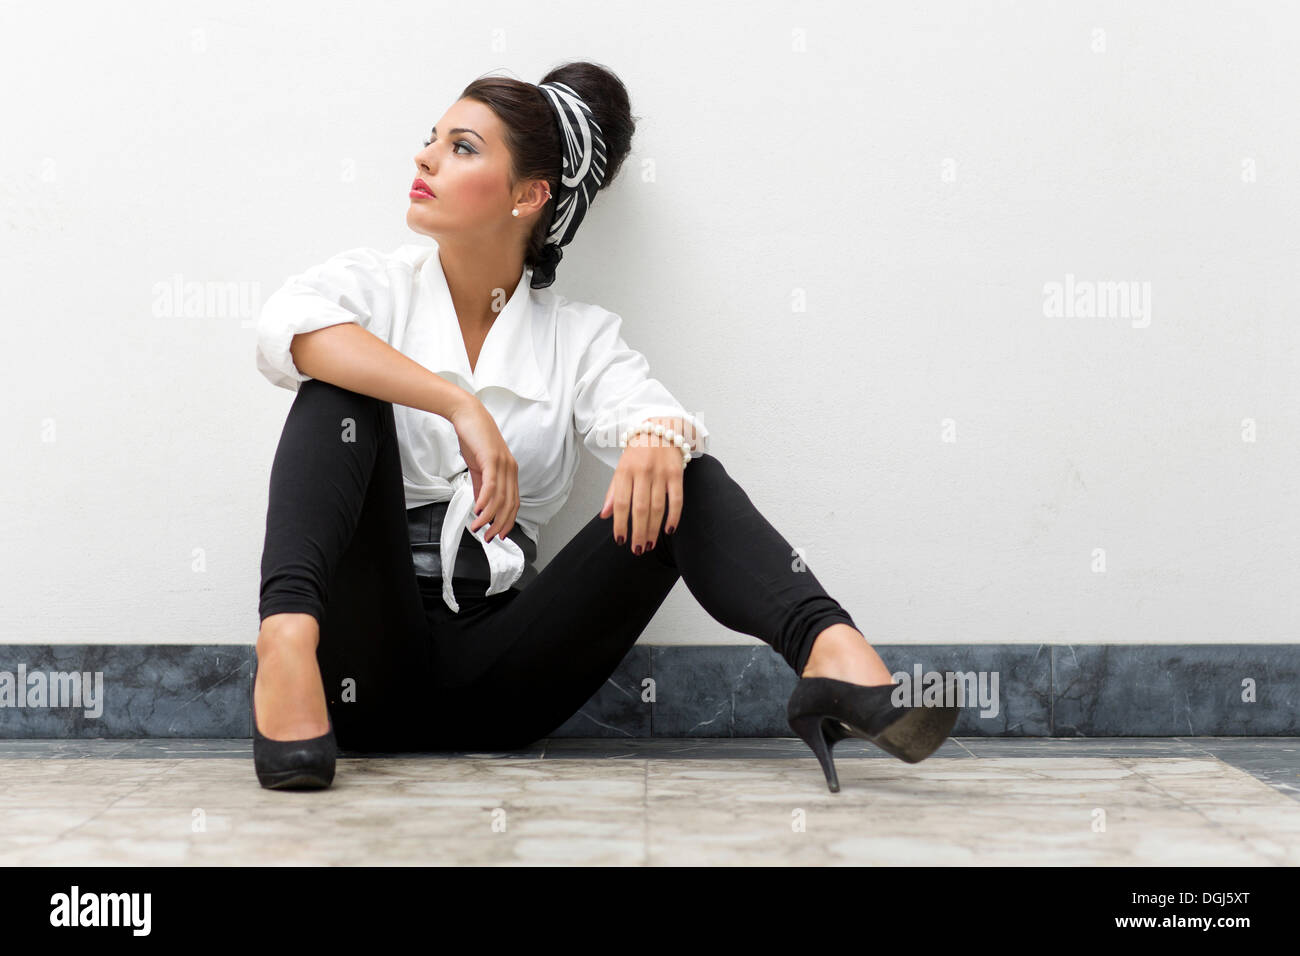 017262eb0 Young woman with an updo hairstyle wearing a white shirt, black leggings  and high heels posing while seated